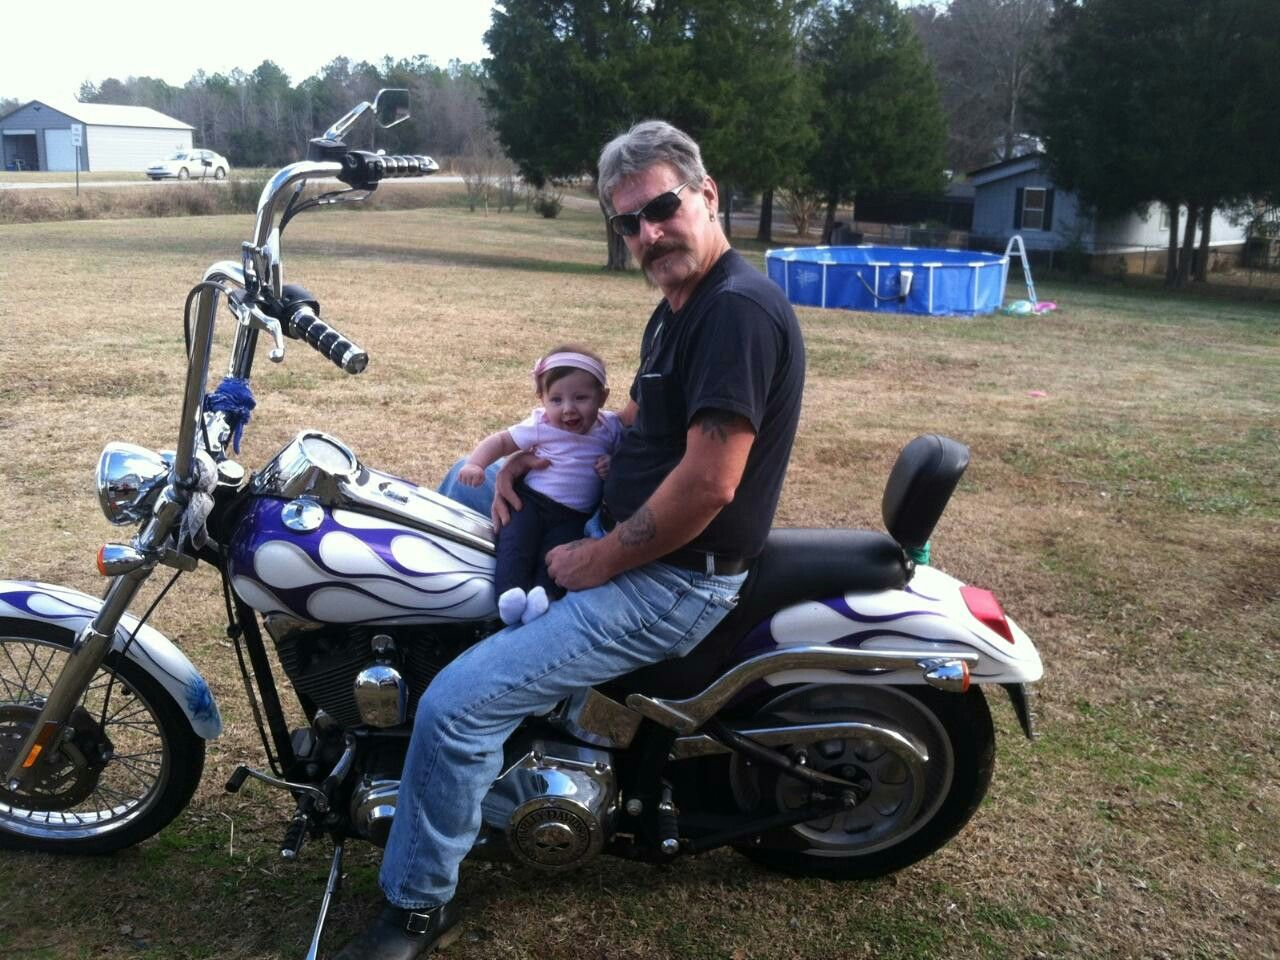 Richard Williams and granddaughter Mabry